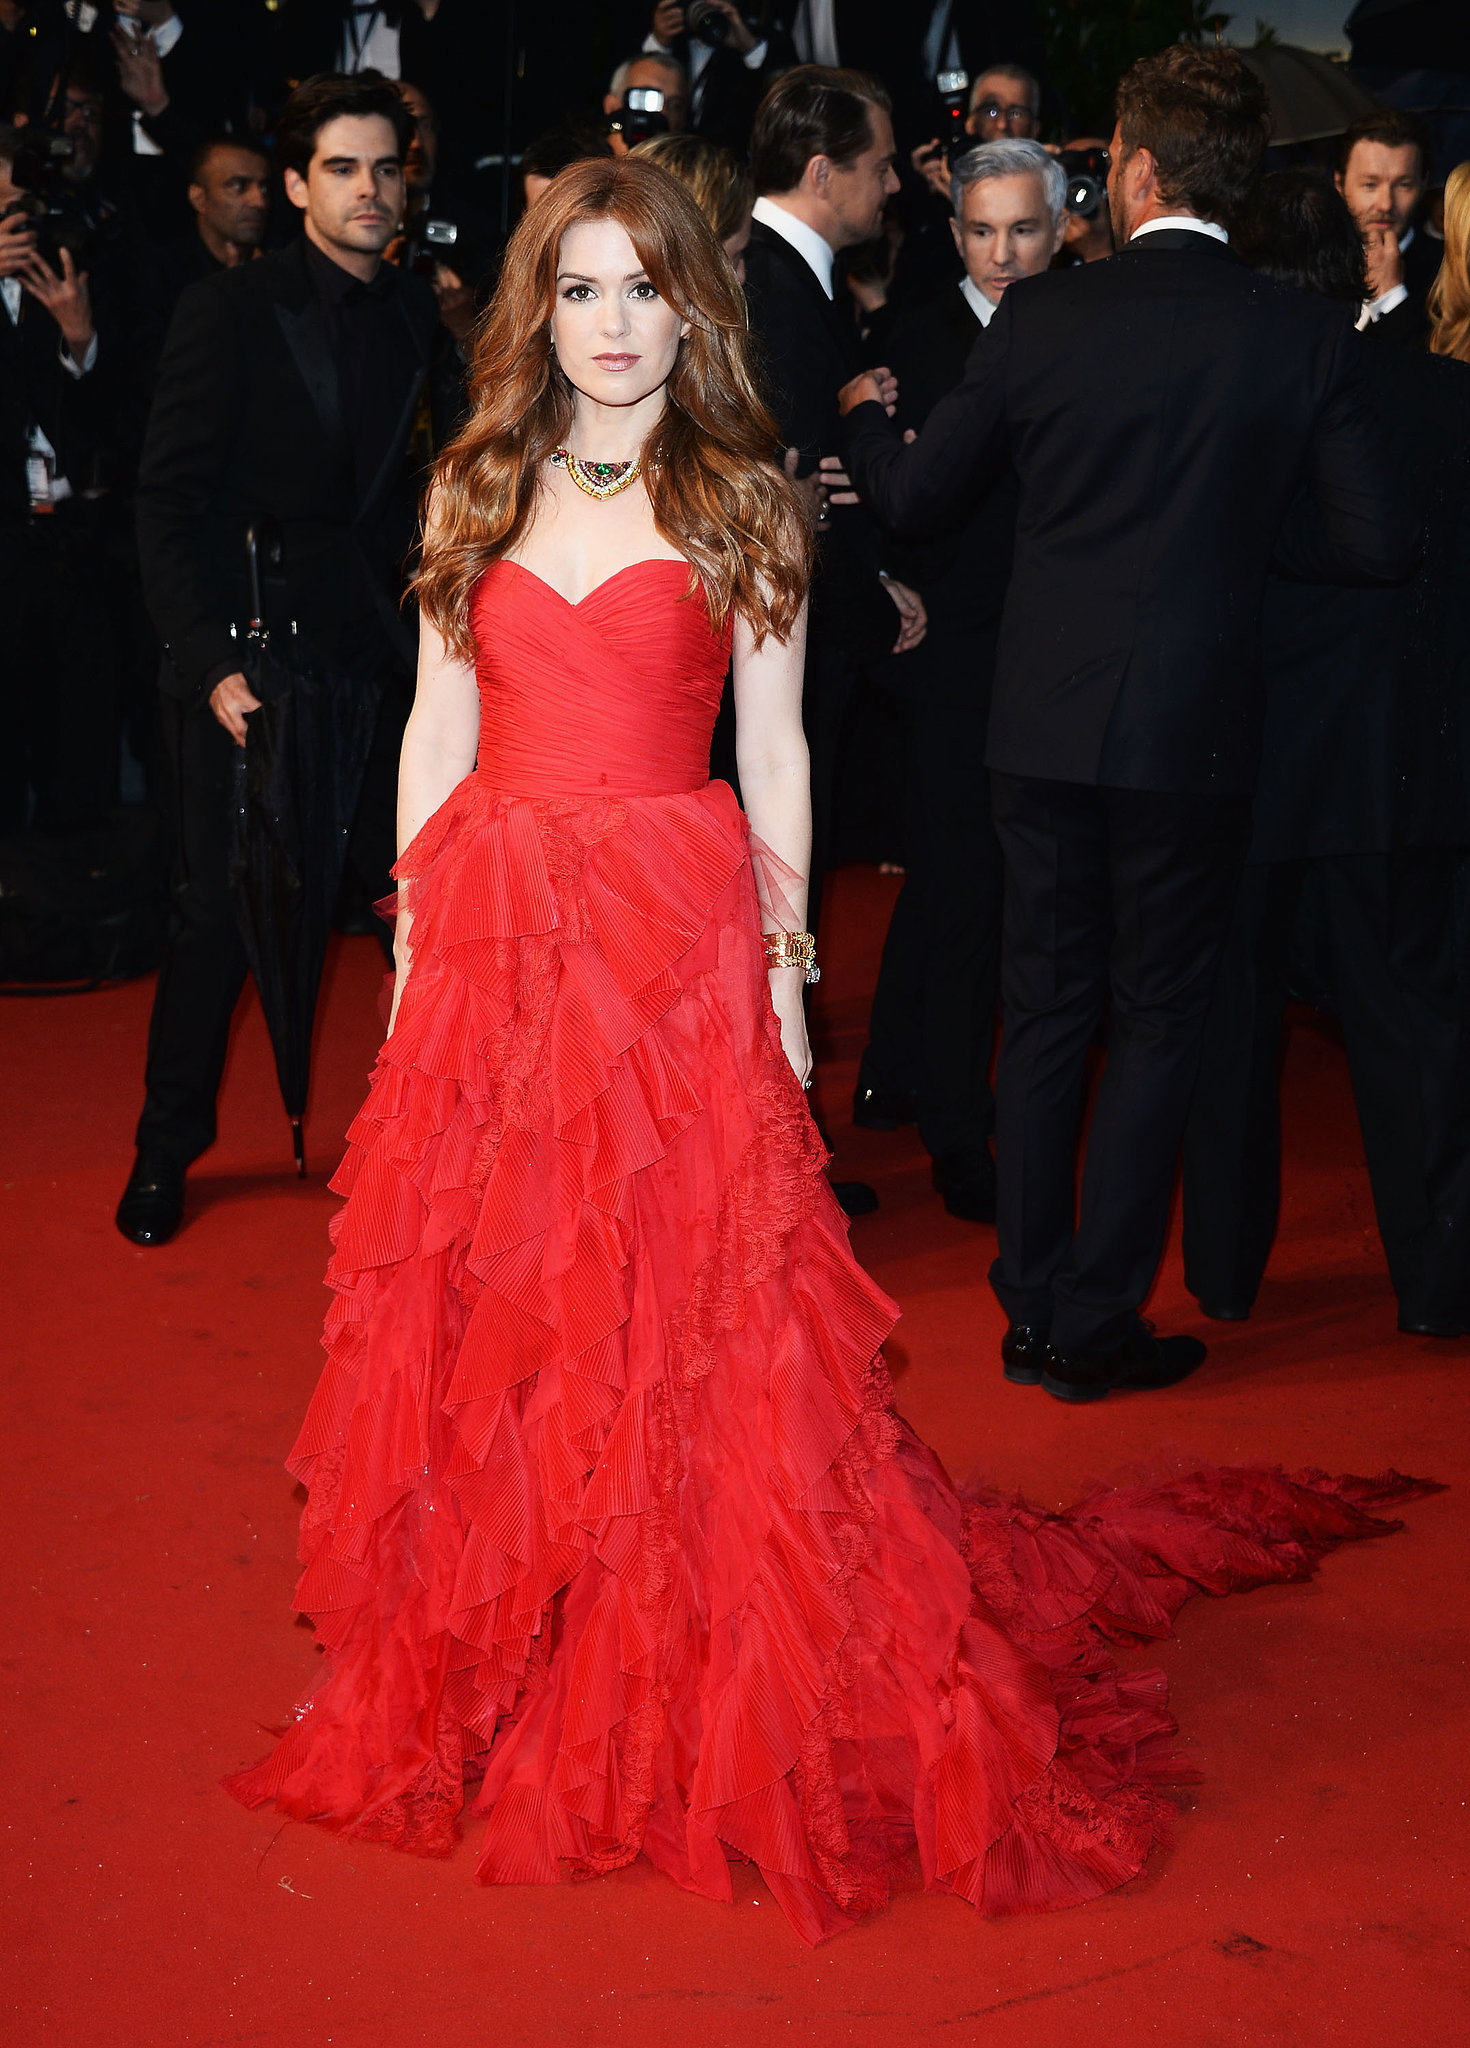 Isla Fisher walked the red carpet at The Great Gatsby's premiere.